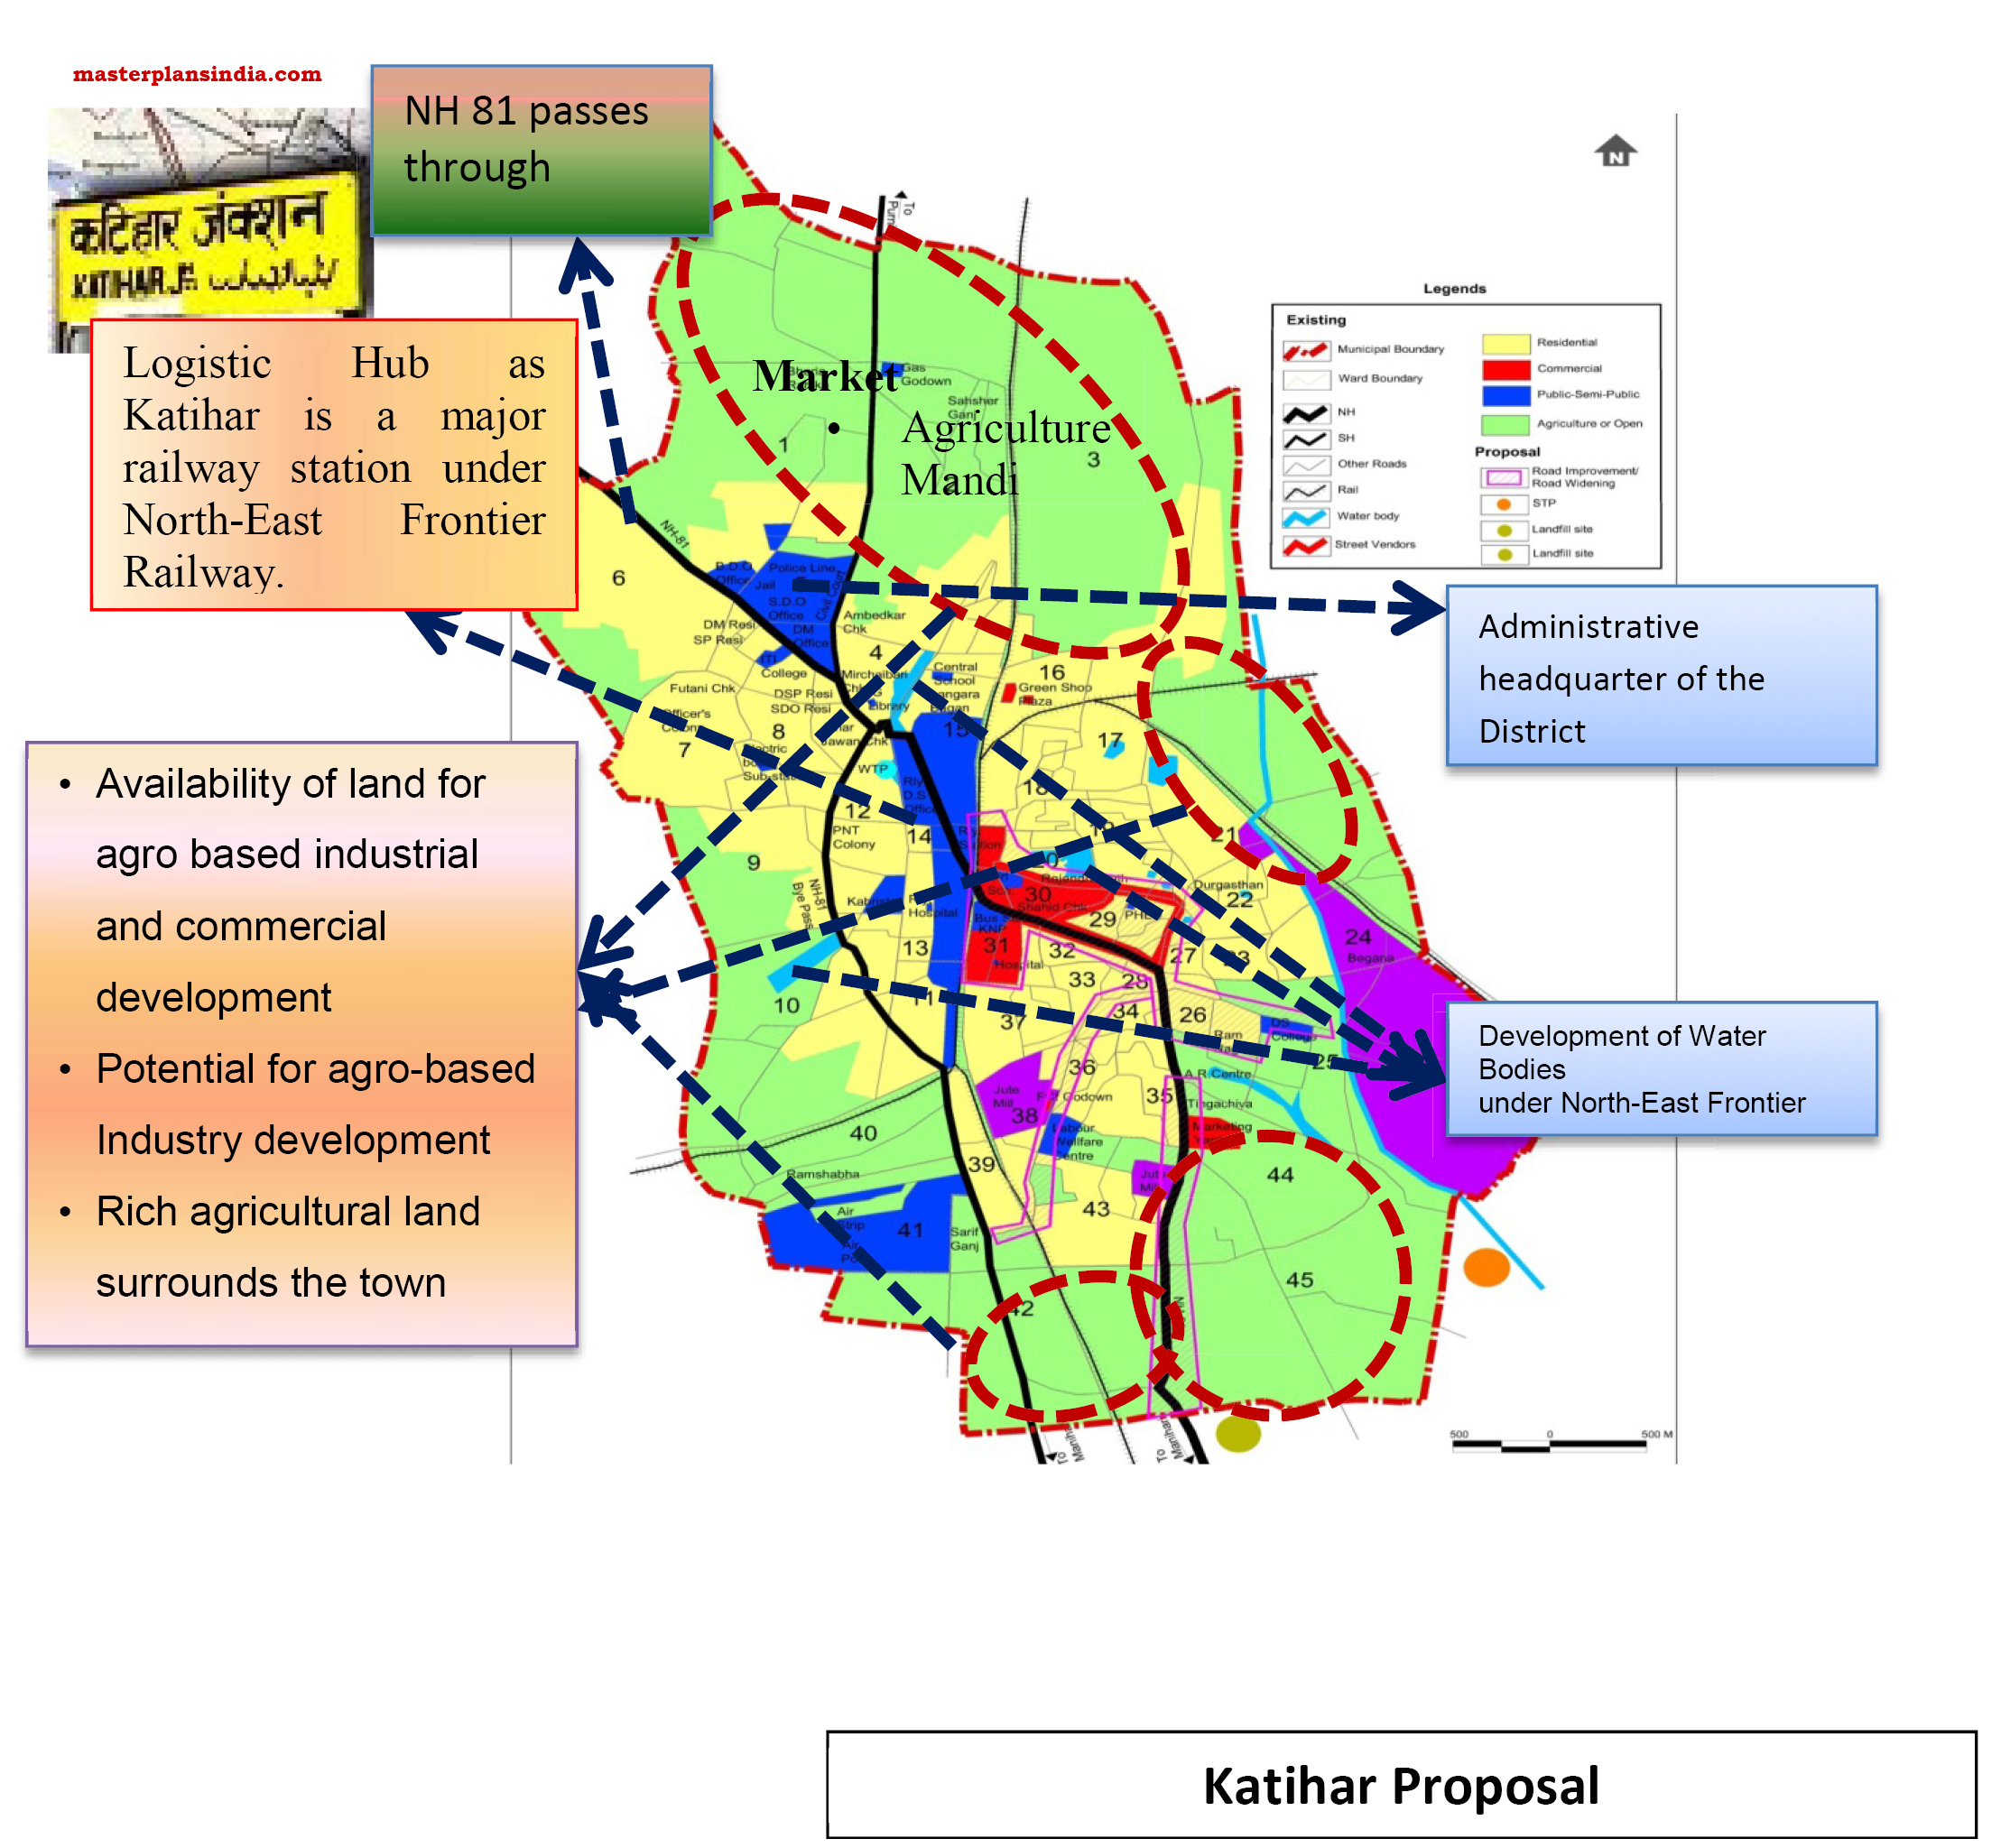 Katihar Development Proposal